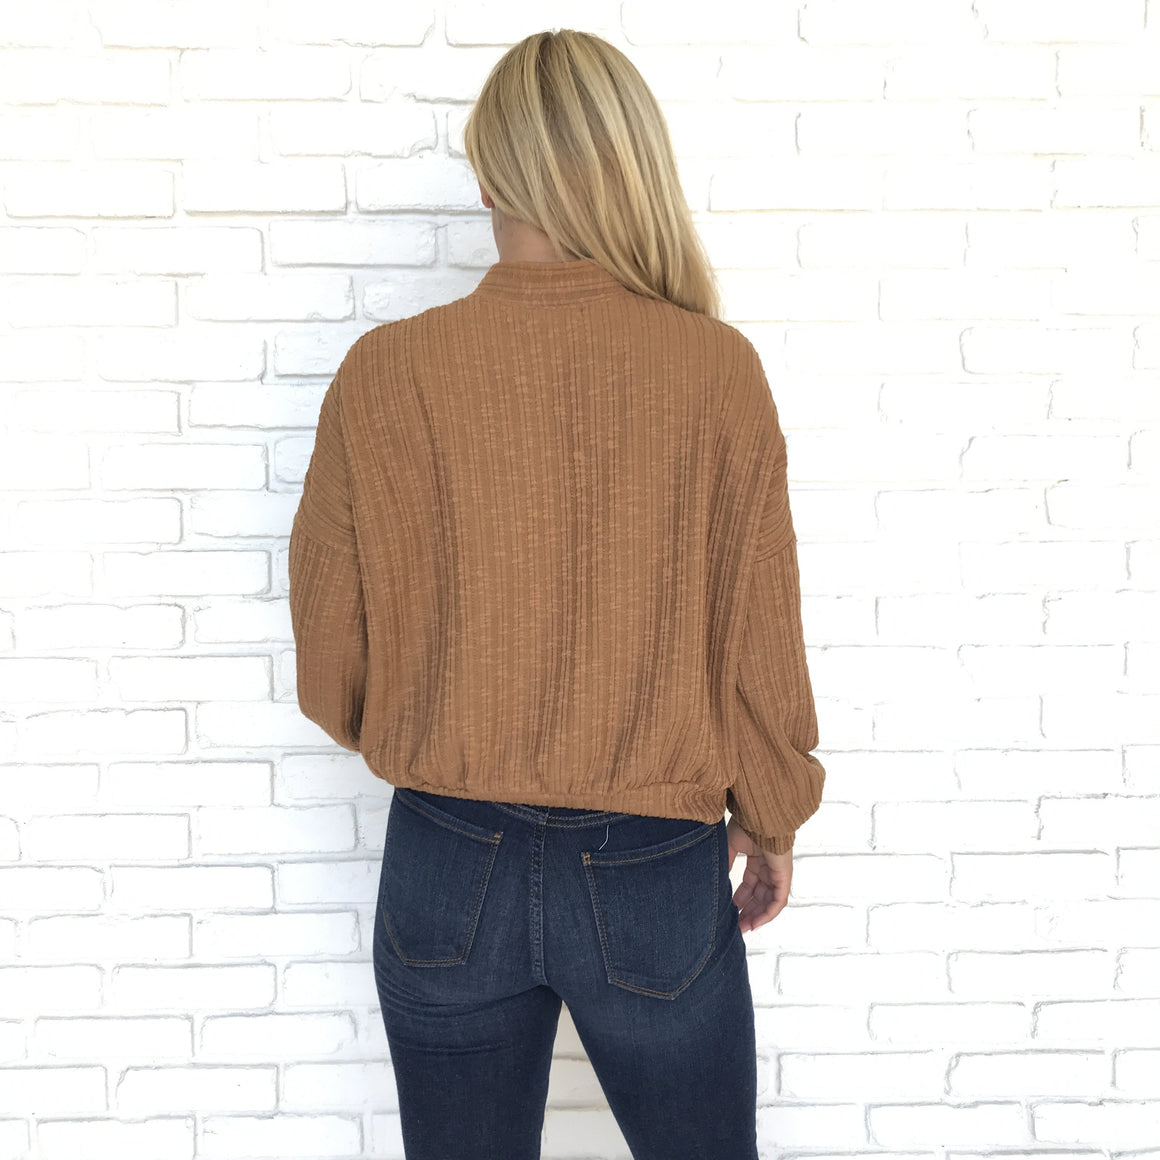 Idyl Wyld Button Up Sweater - Dainty Hooligan